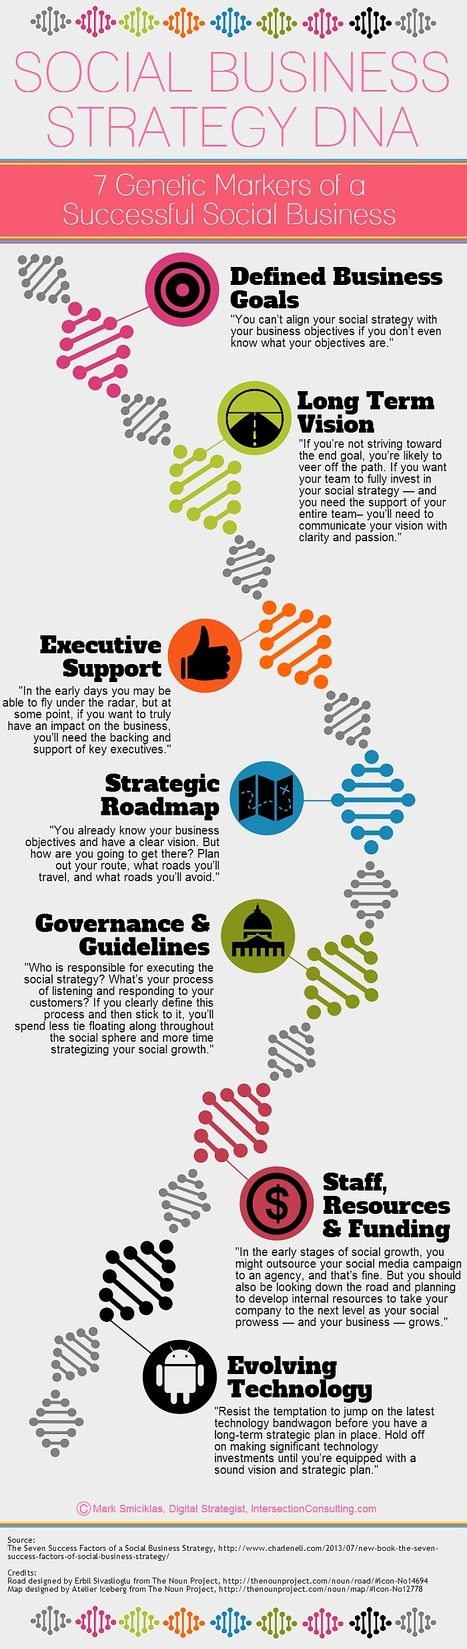 Social Business Strategy DNA [Infographic] | Social Media & Internet Marketing Infographics | Scoop.it